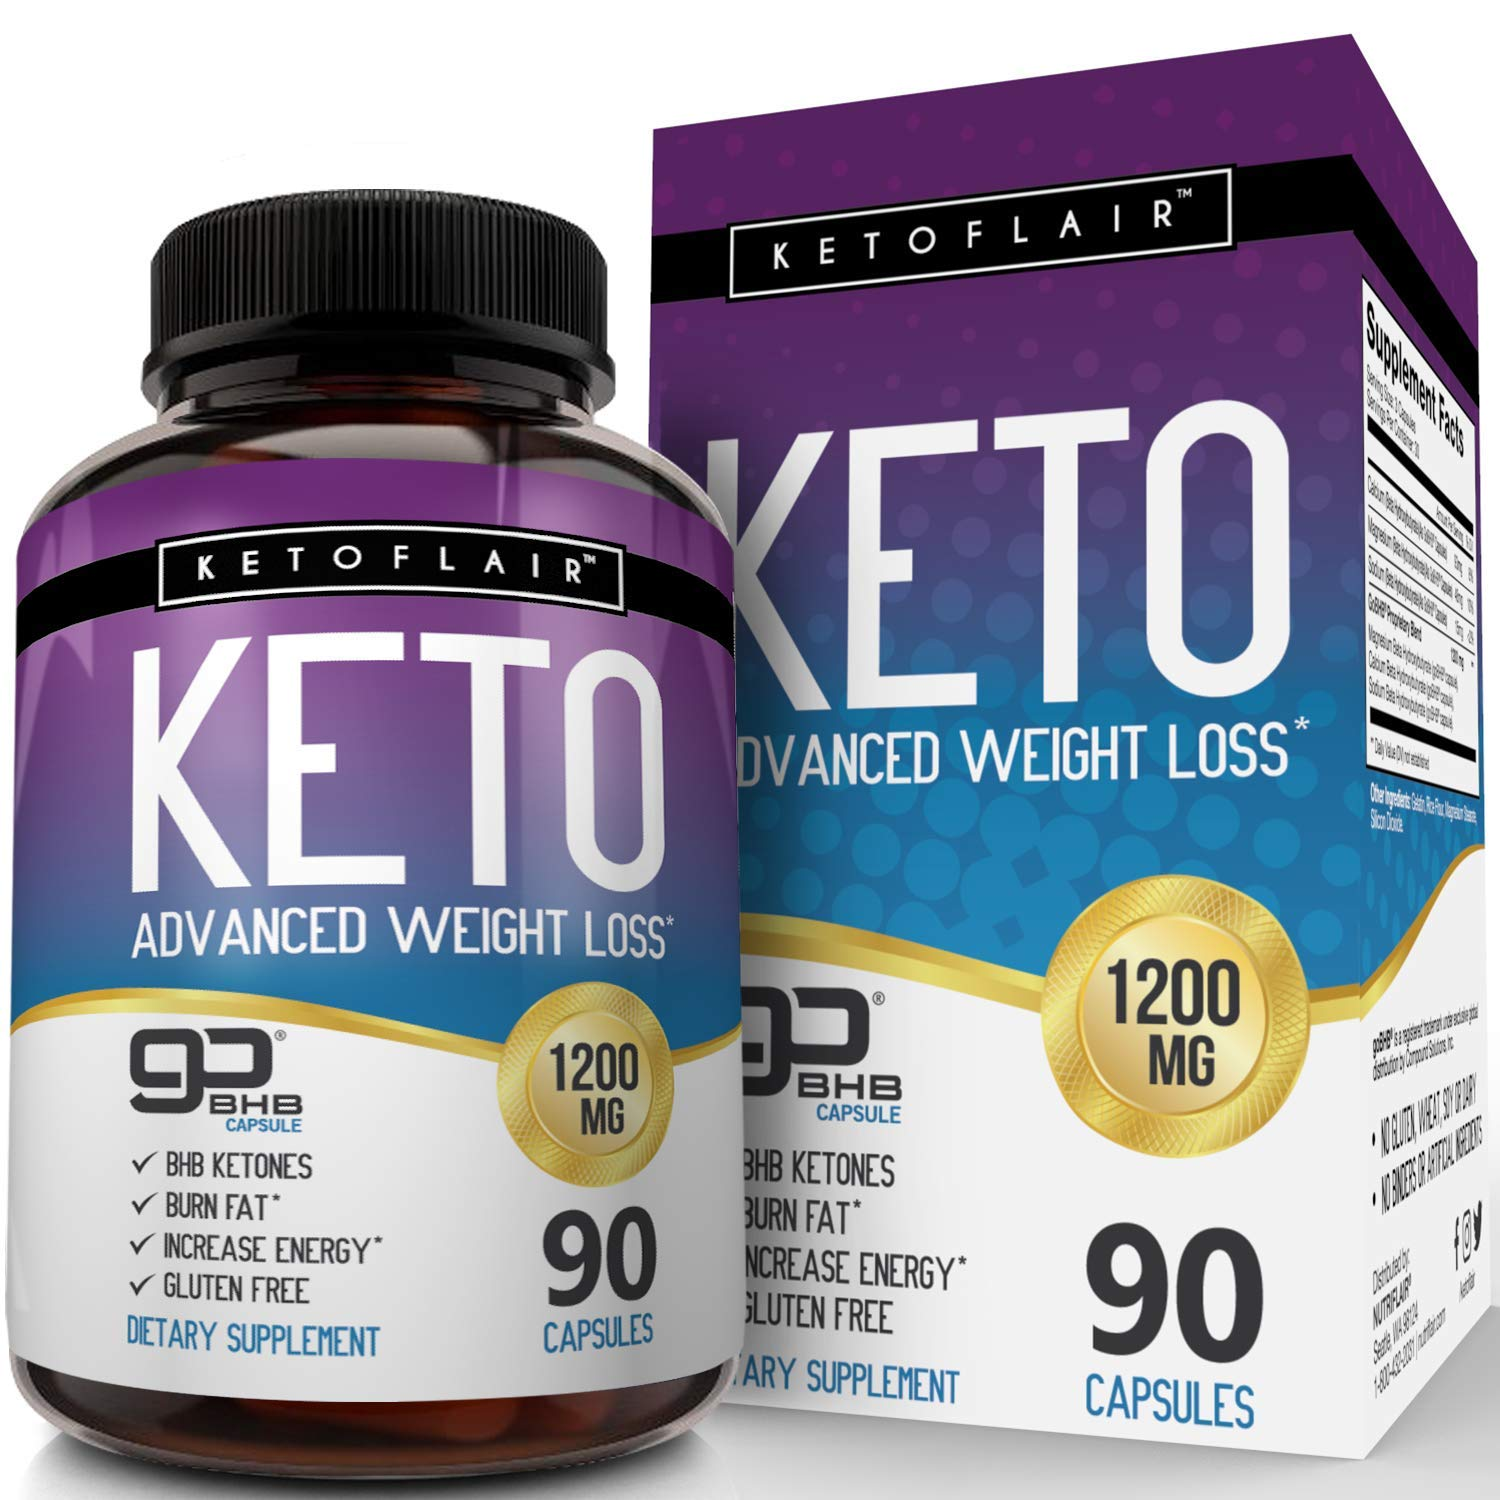 Best Keto Diet Pills GoBHB 1200mg, 90 Capsules Advanced Weight Loss Ketosis Supplement - Natural BHB Salts (beta hydroxybutyrate) Ketogenic Fat Burner, Carb Blocker, Non-GMO - Best Weight Loss Support by NutriFlair